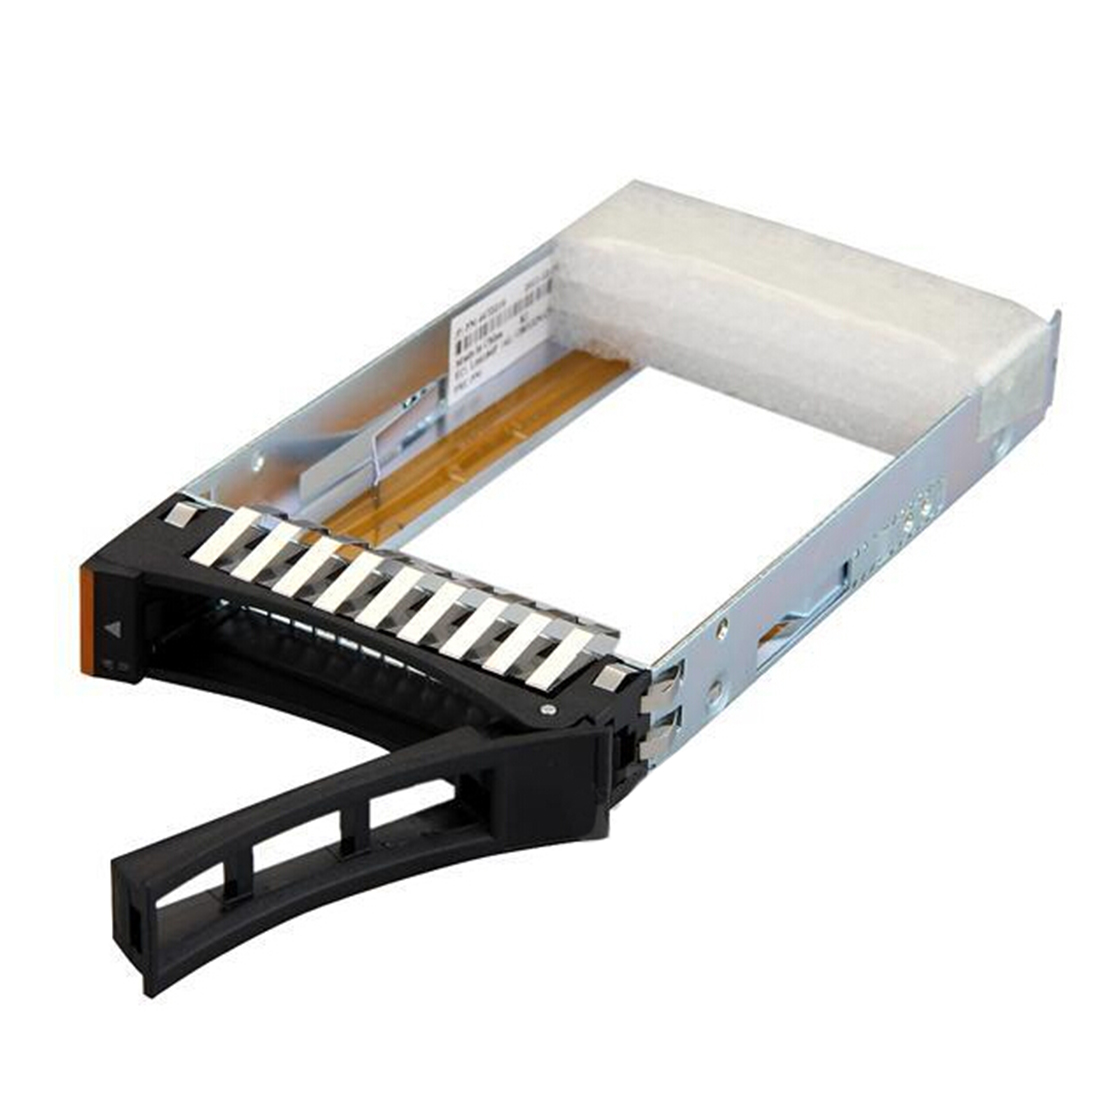 Etmakit new Hot 2.5 Inch SAS SATA Server HDD Hard Drive Bay Tray Bracket Caddy For IBM Drives 44T2216 high quality